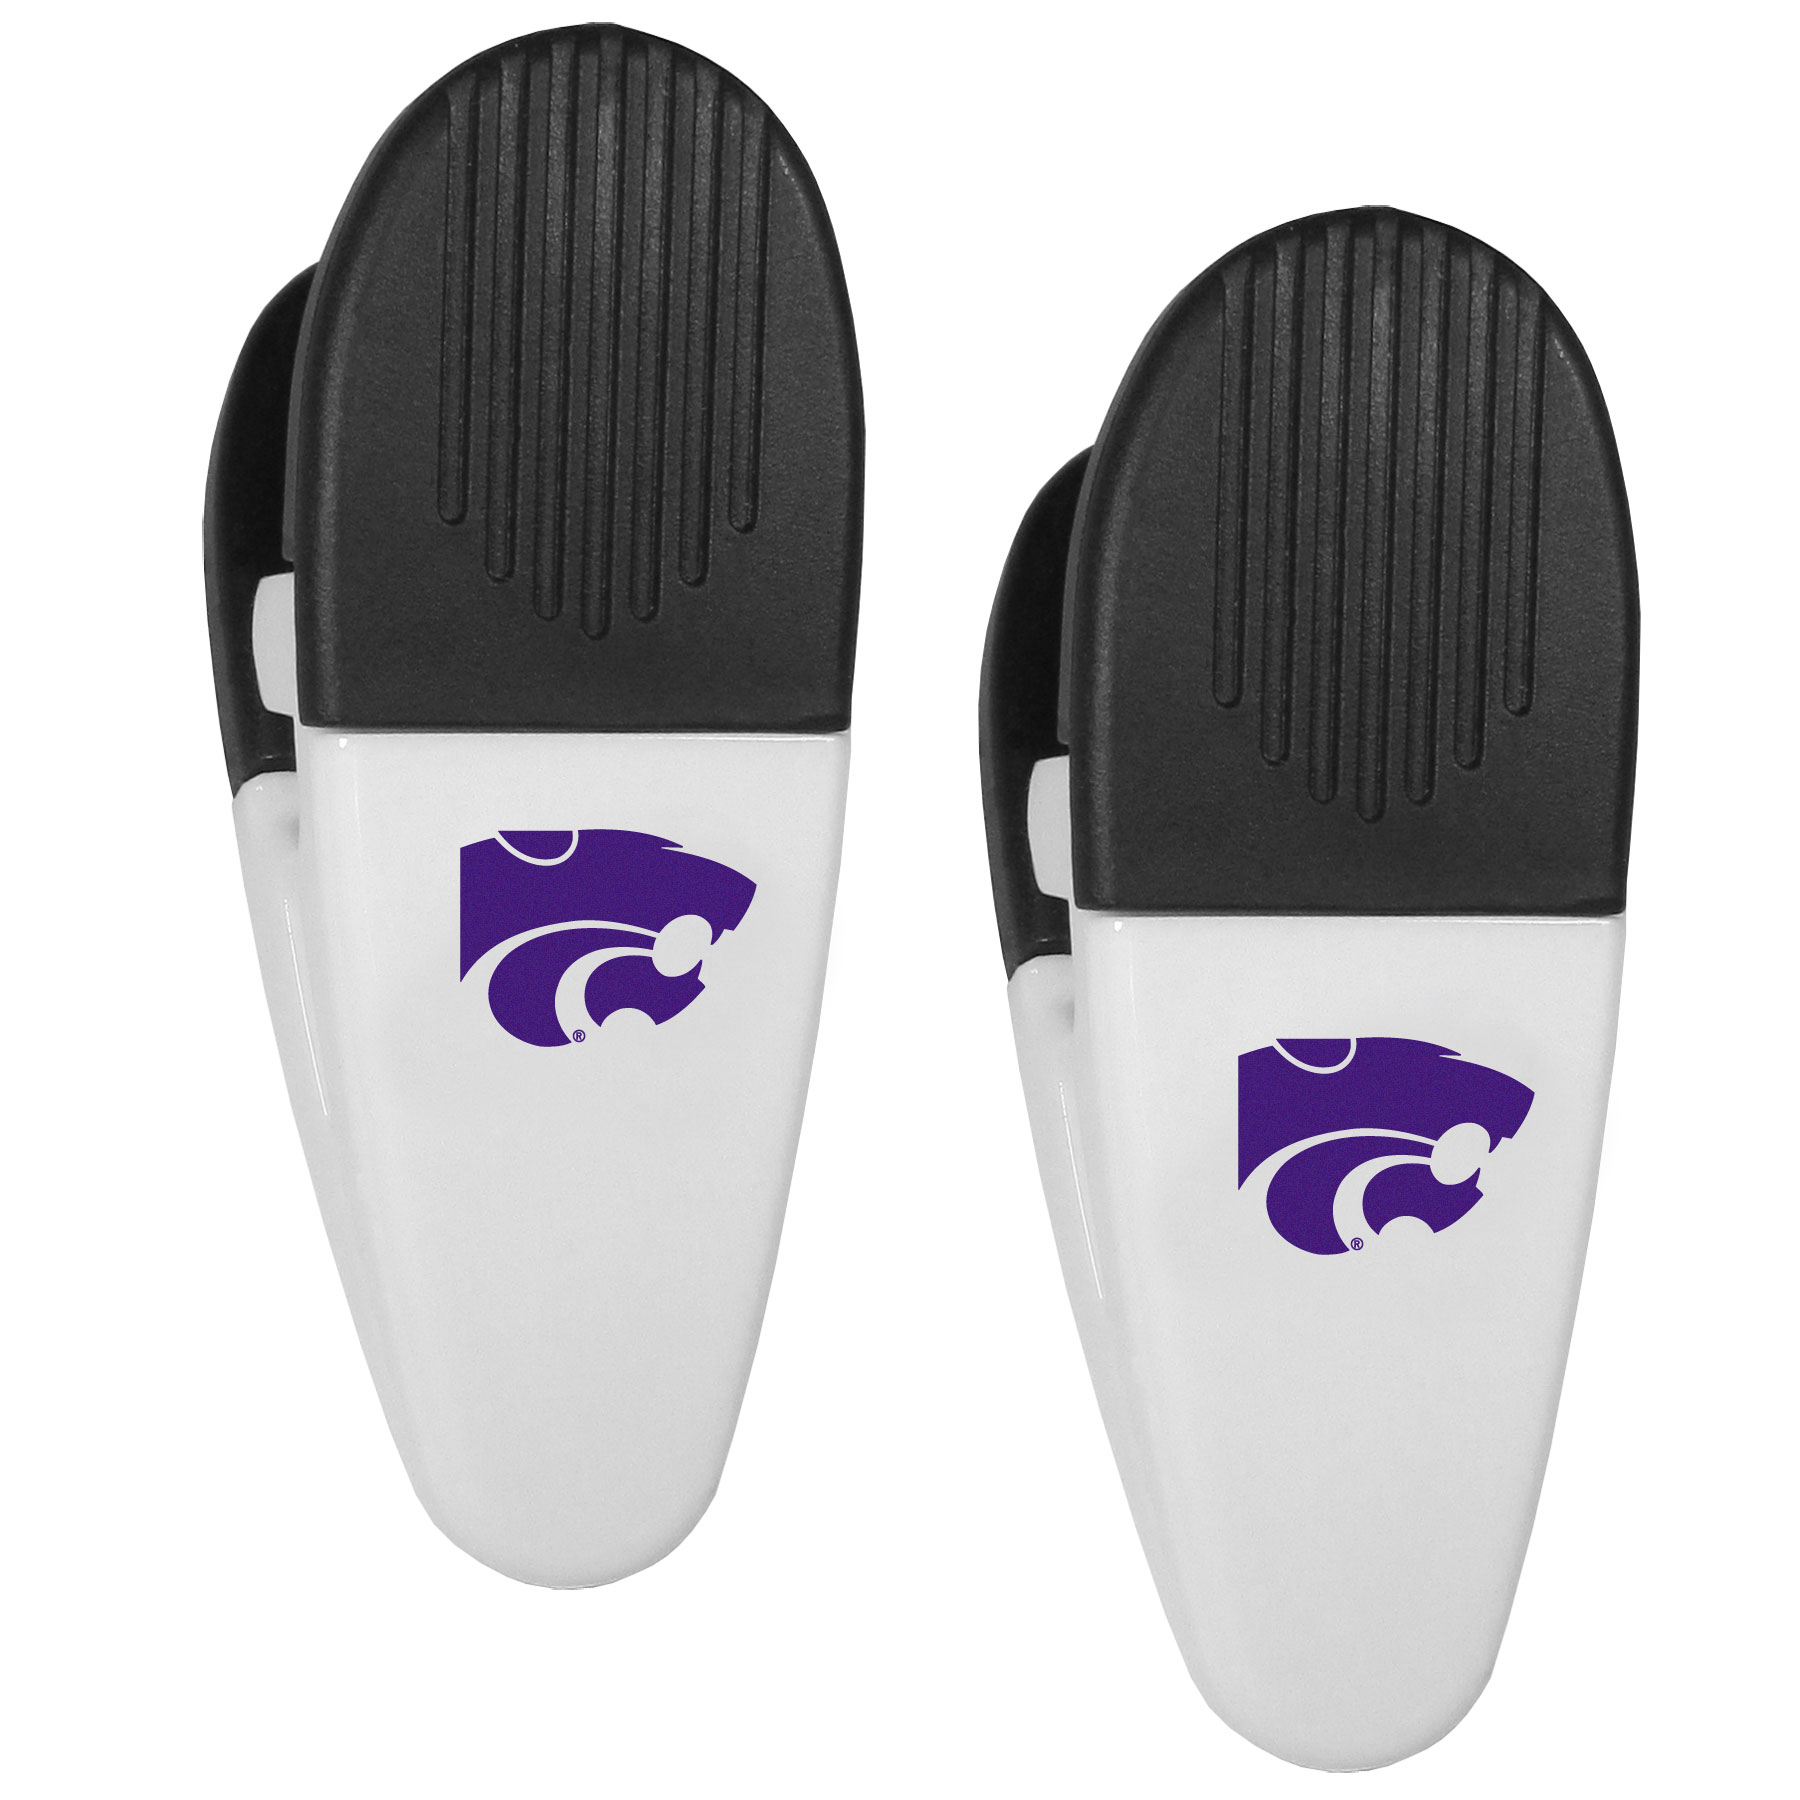 Kansas St. Wildcats Mini Chip Clip Magnets, 2 pk - Our Kansas St. Wildcats chip clip magnets feature a crisp team logo on the front of the clip. The clip is perfect for sealing chips for freshness and with the powerful magnet on the back it can be used to attach notes to the fridge or hanging your child's artwork. Set of 2 magnet clips, each clip is 3.5 inches tall and 1.25 inch wide.